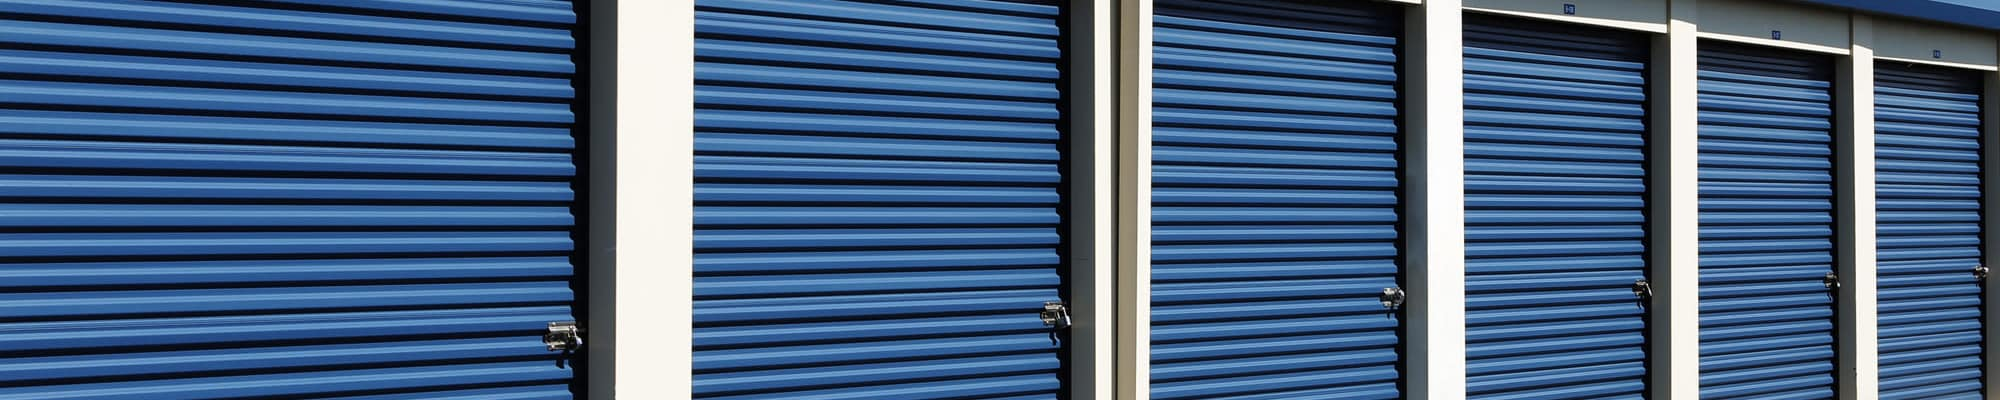 Storage units in Cocoa, Florida